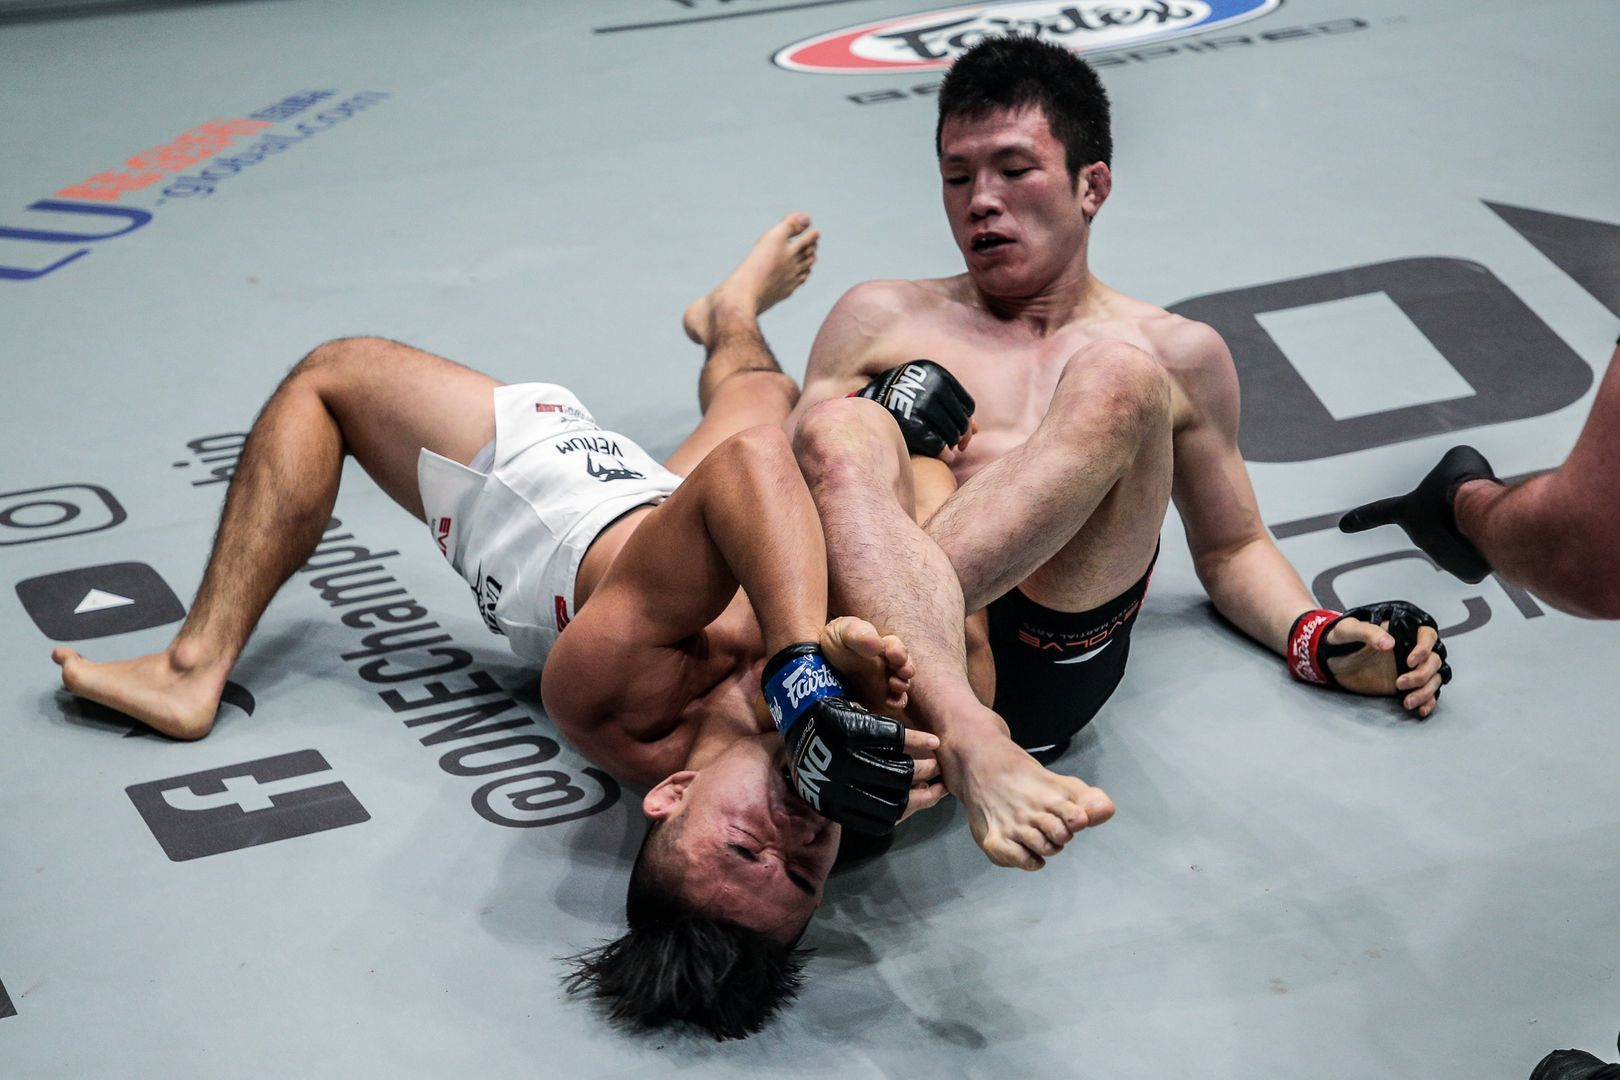 Japanese legend Shinya Aoki puts Christian Lee in an armbar